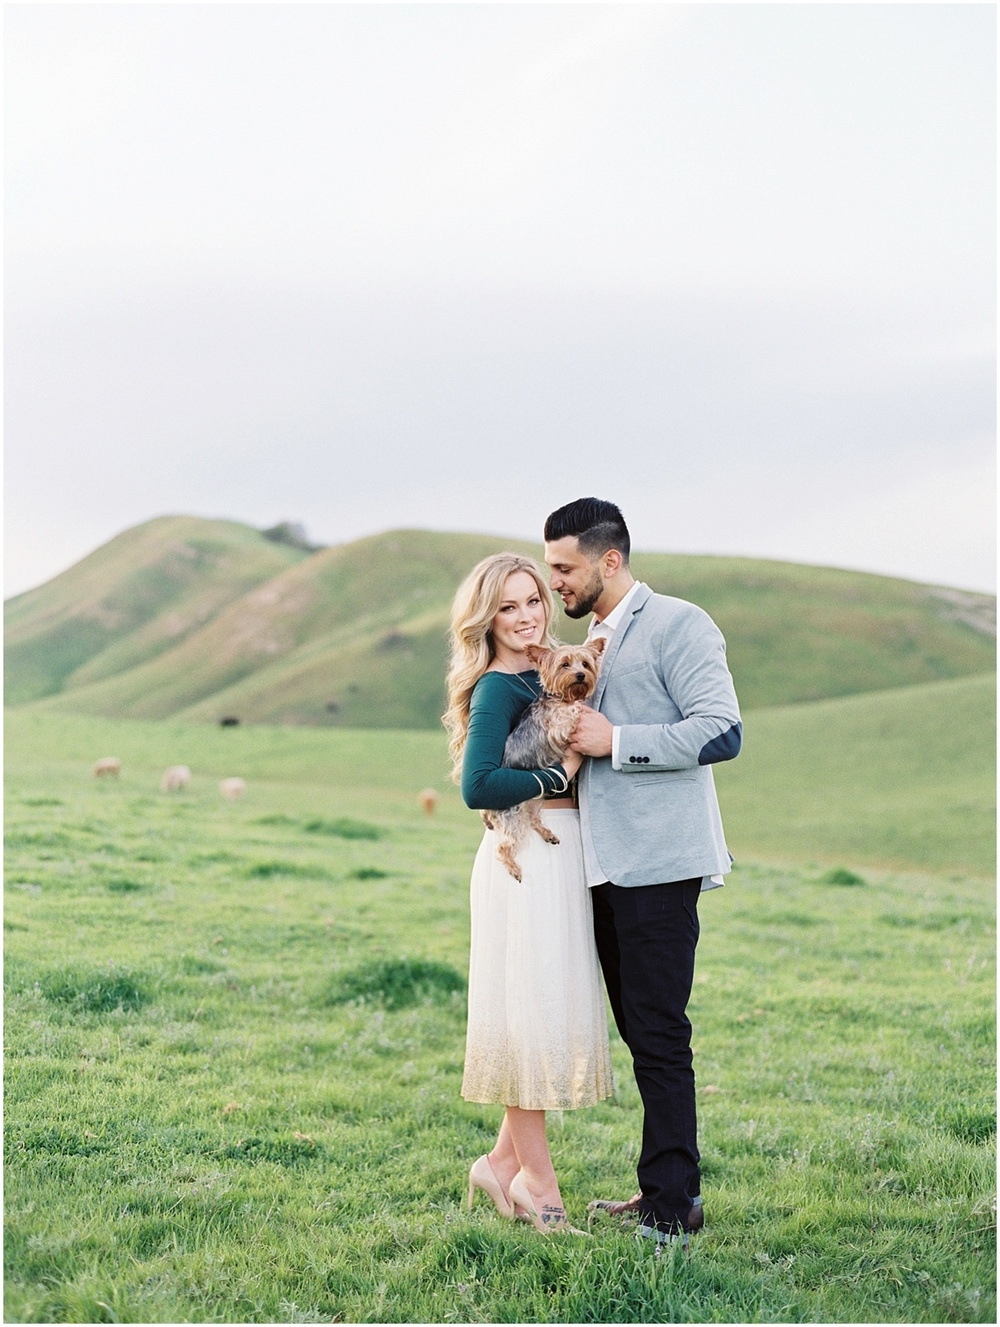 Napa_Engagement_Photos_011.jpg